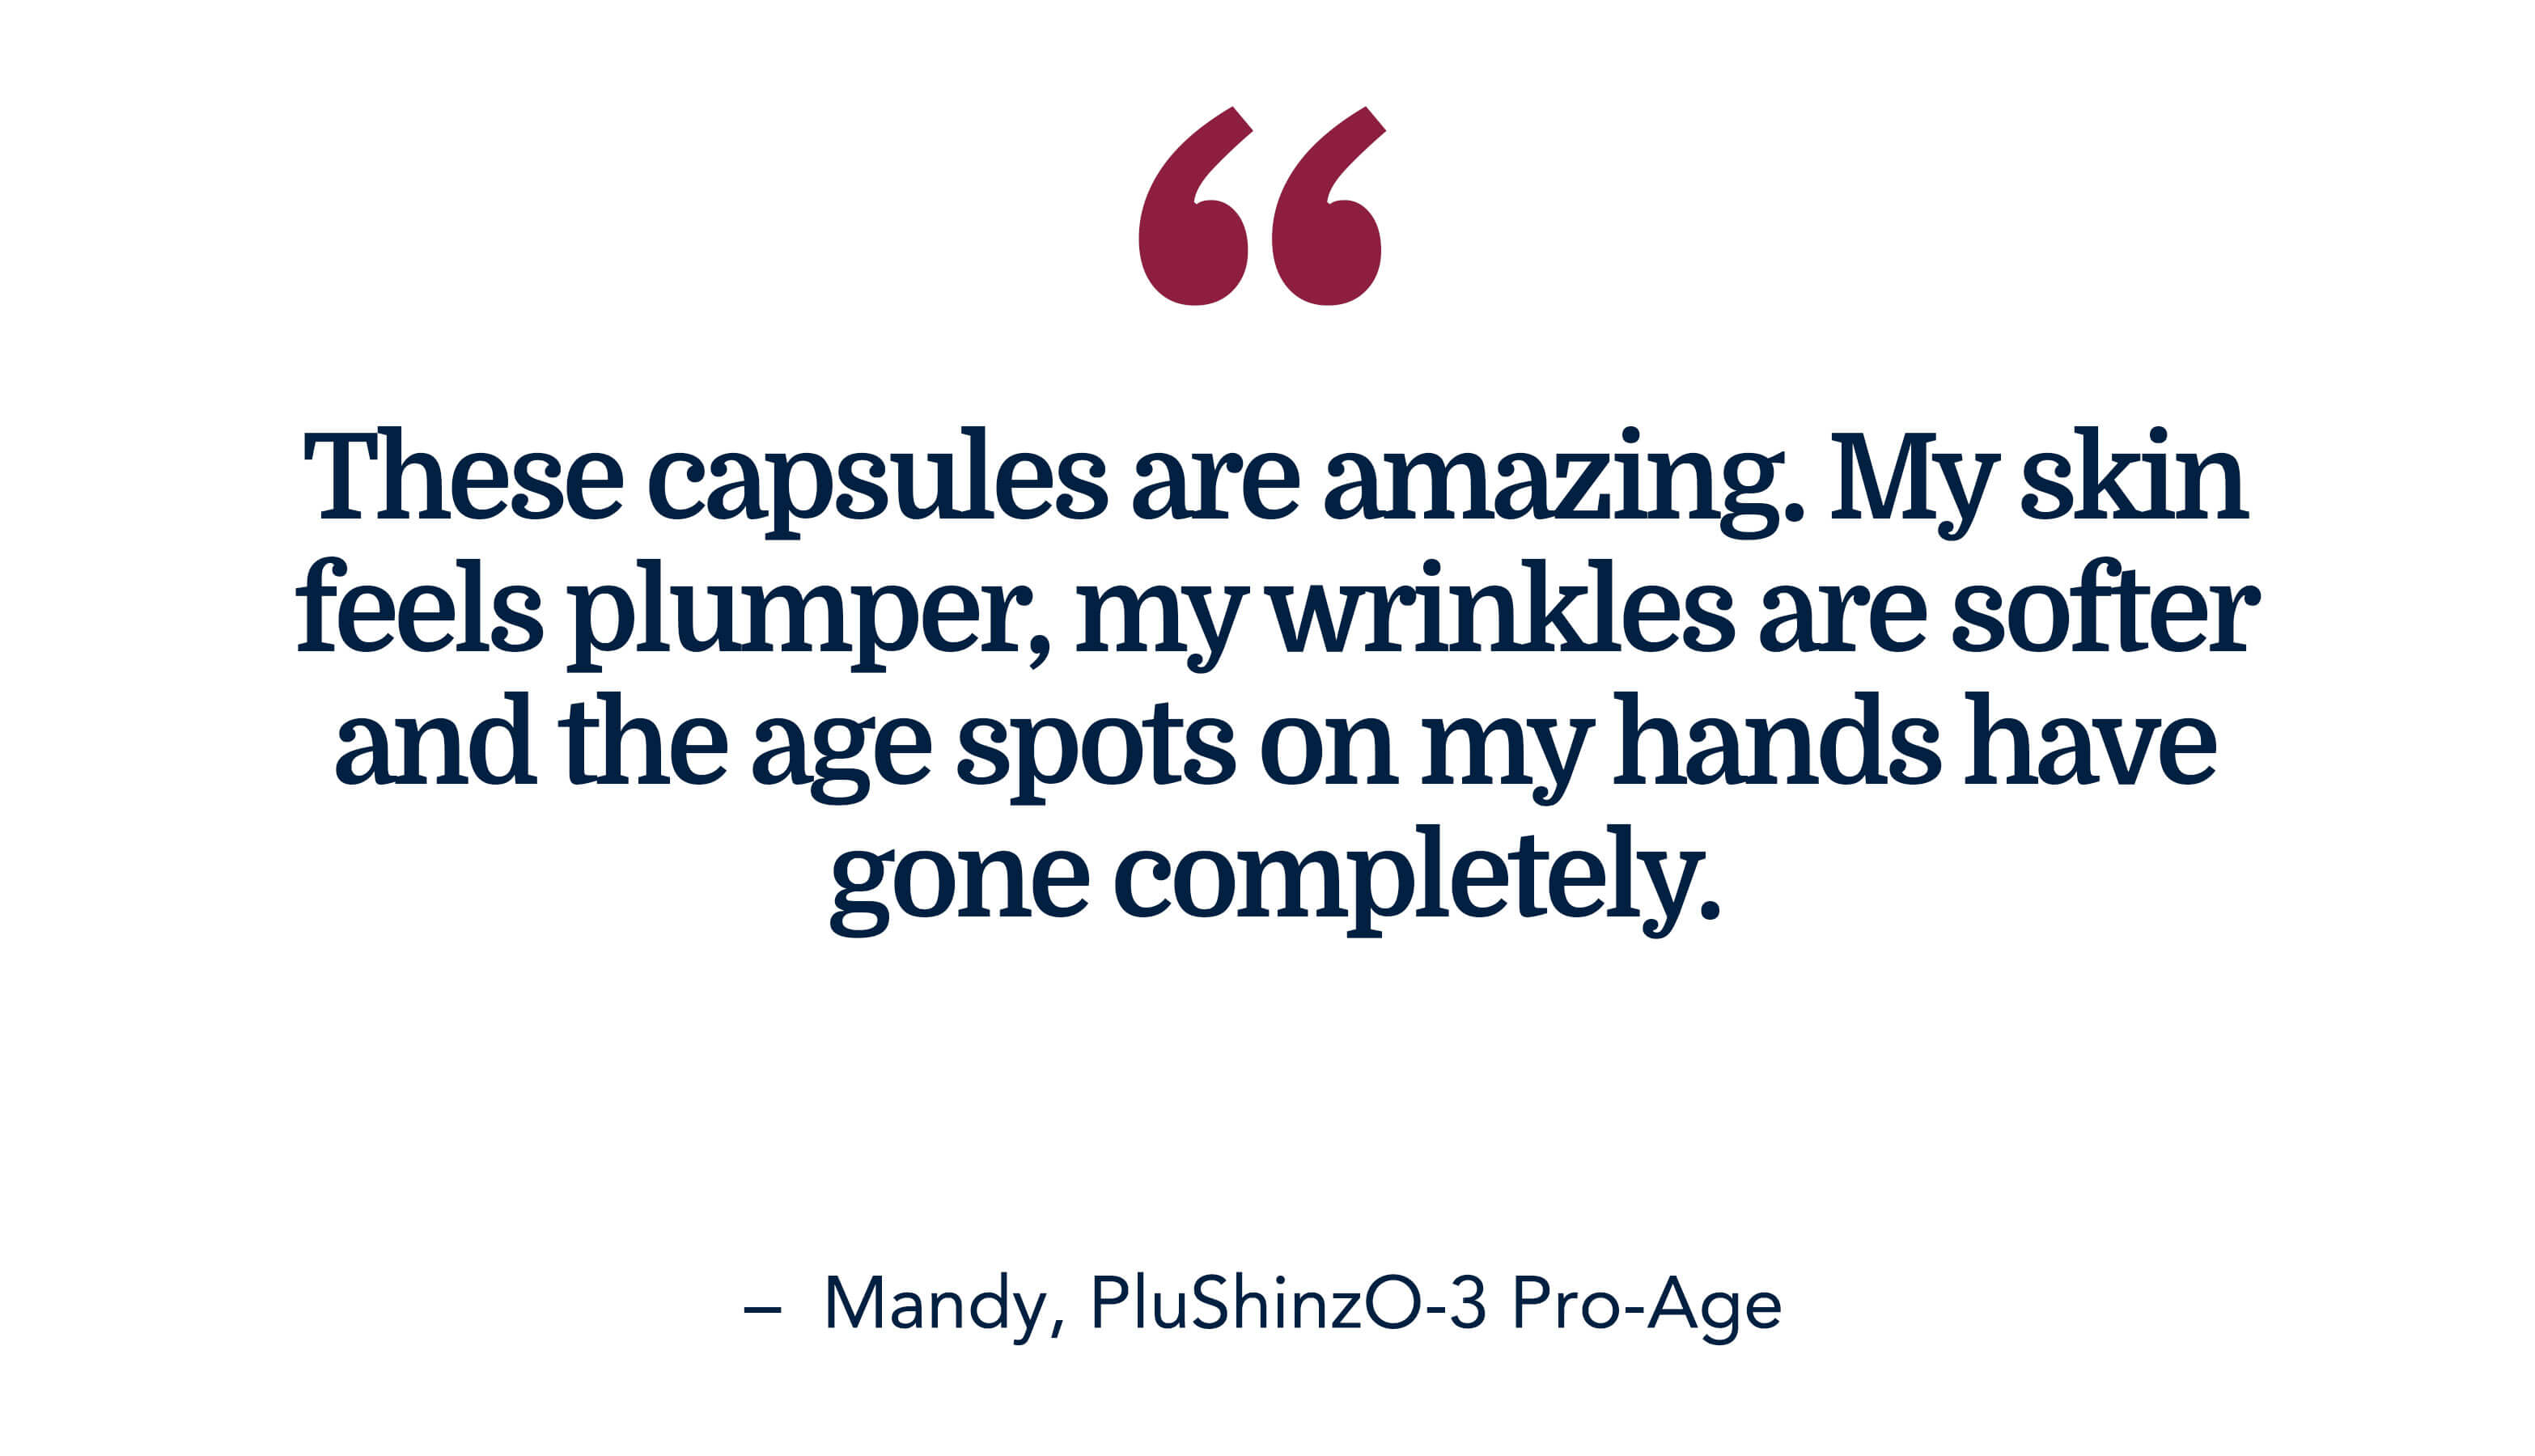 These capsules are amazing. My skin feels plumper, my wrinkles are softer and the age spots on my hands have gone completely. - Mandy, PluShinzO-3 Pro-Age